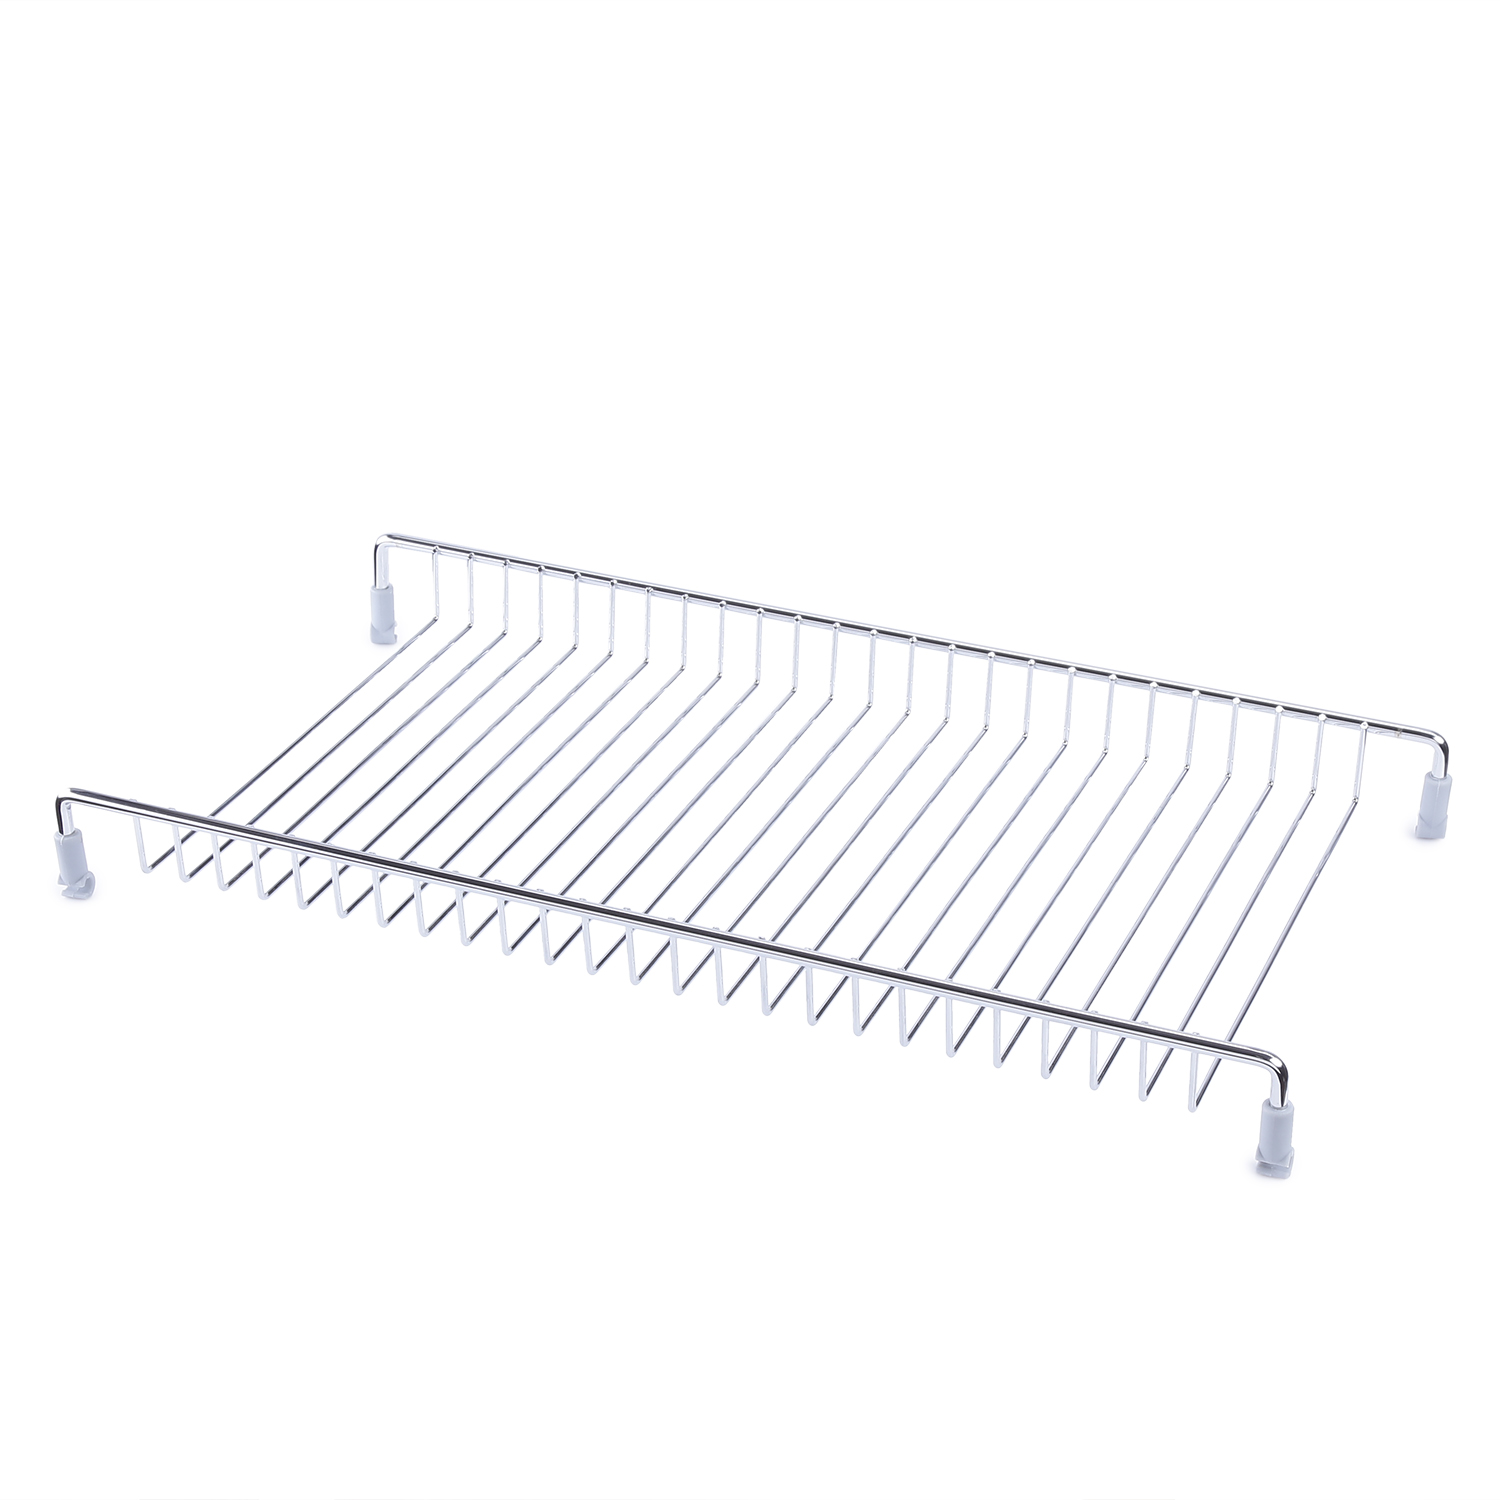 Hettich Stainless Steel Cargo Portable Dish Drainer - 5 Year Warranty Against Rusting